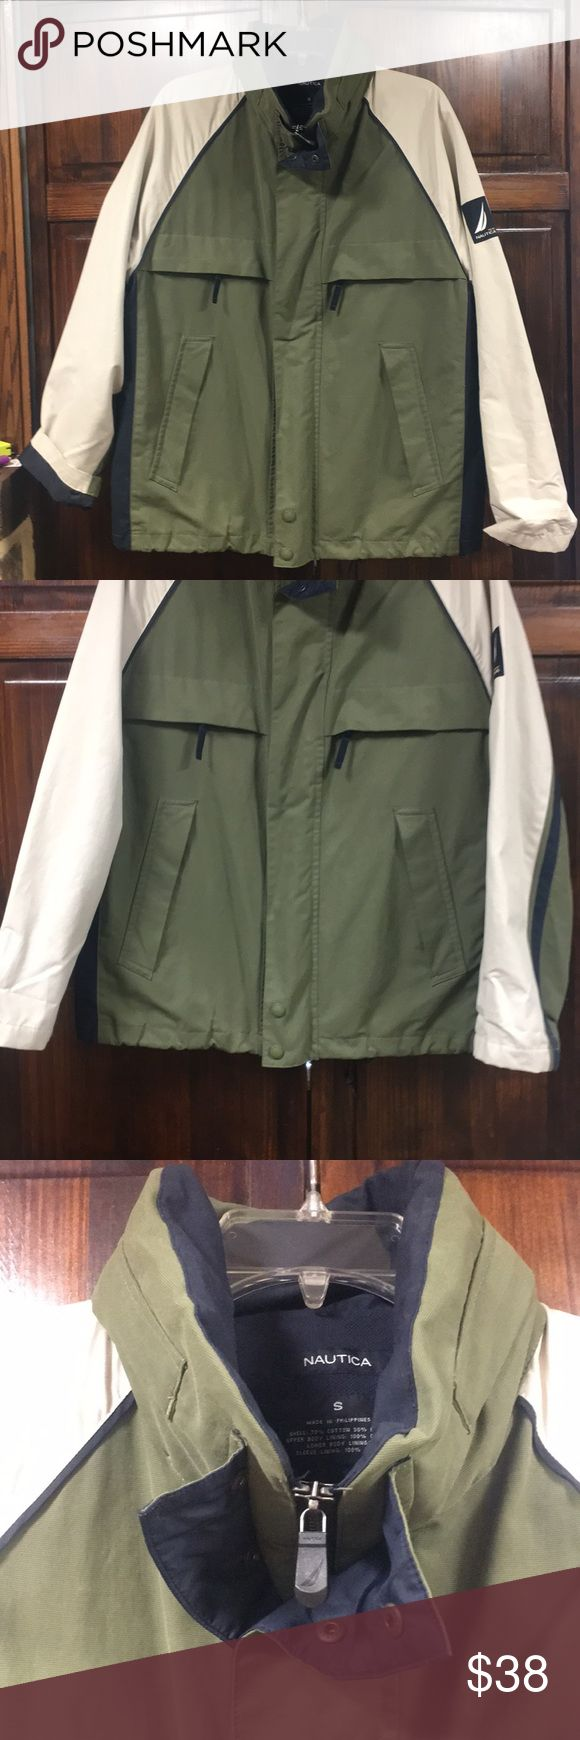 Nautica men's sz small green, blue & cream jacket Nautica men's sz small green, blue & cream zip up jacket.  Preowned but excellent condition.  One inside cell phone pocket, one inside zipper closure pocket.  4 zipper pockets on outside front of jacket.  Navy blue interior lining. Nautica Jackets & Coats Performance Jackets